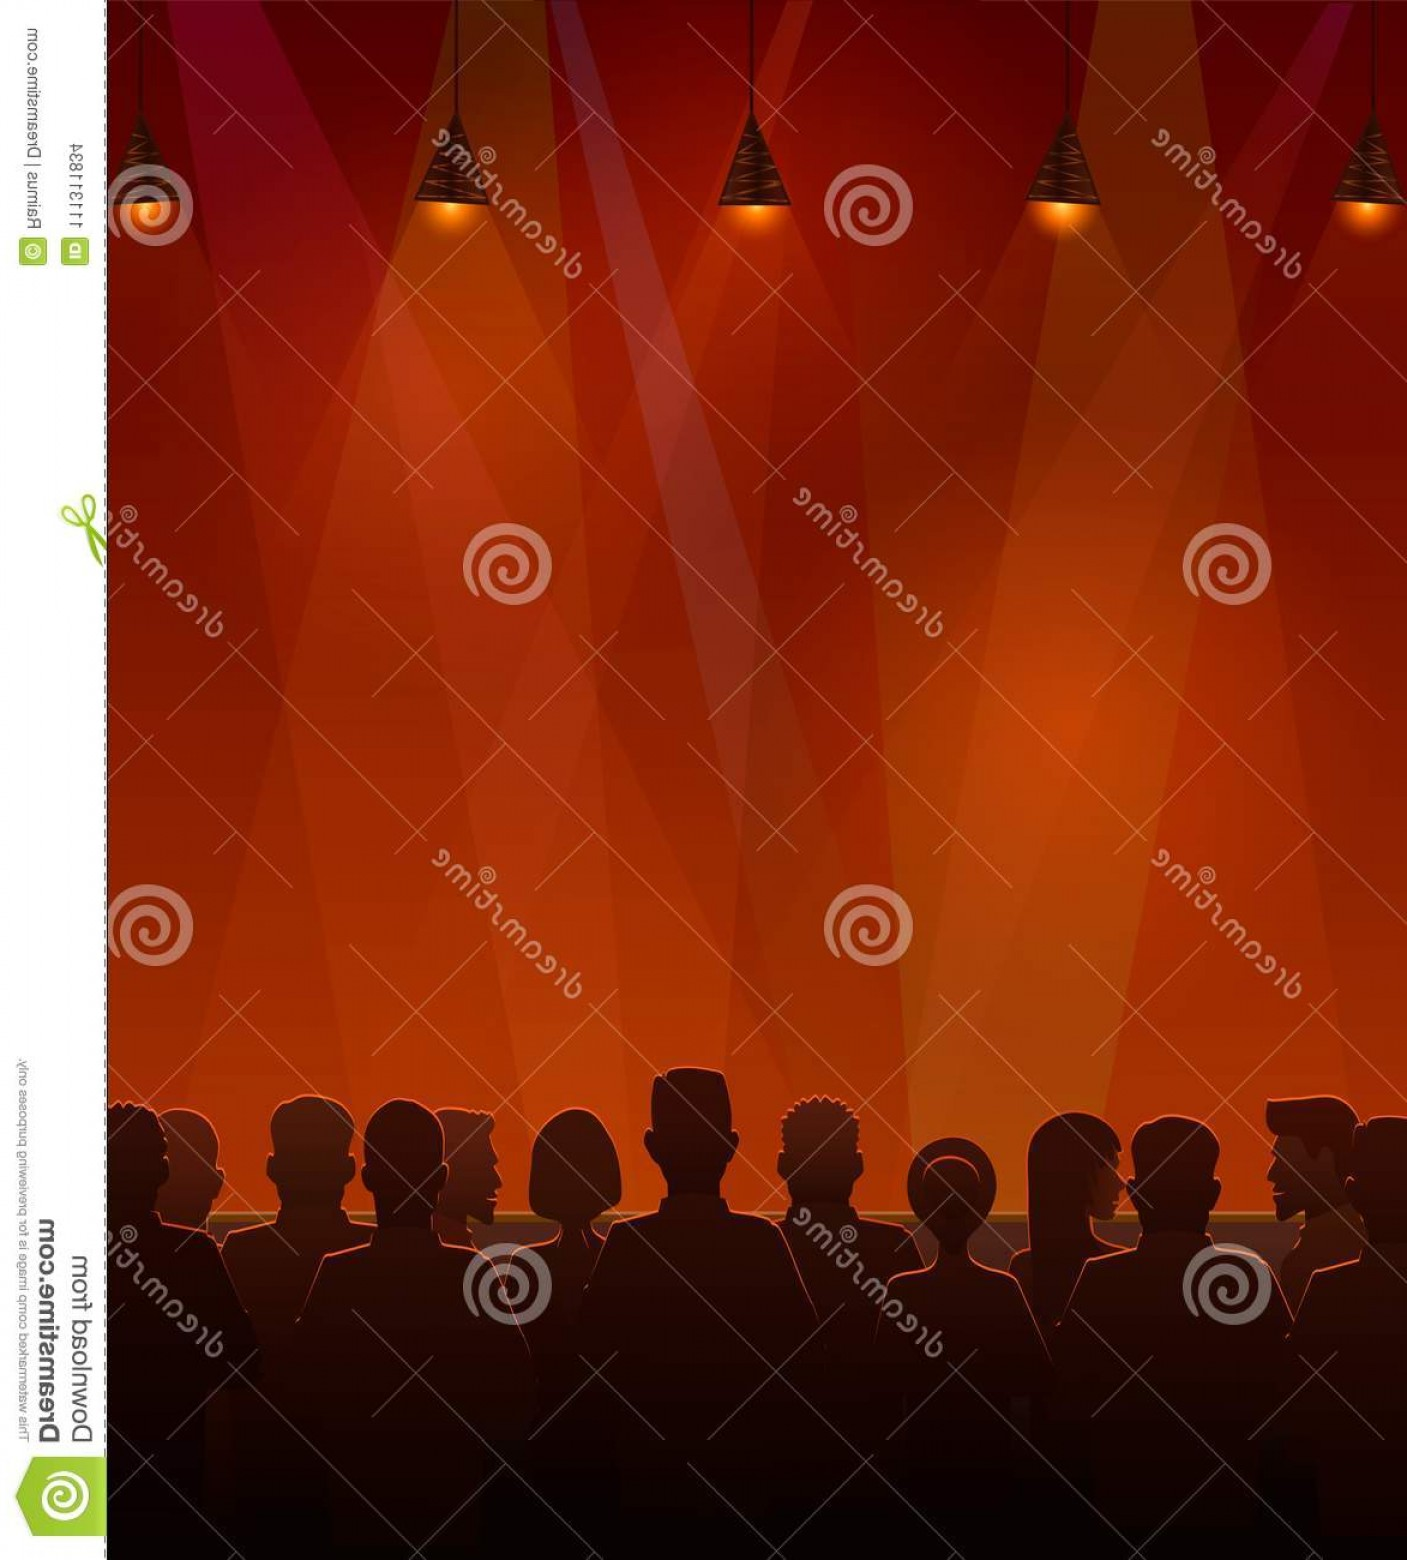 Vector Stage Audience: People Sitting Stage Vector Illustration Silhouettes Audience Image